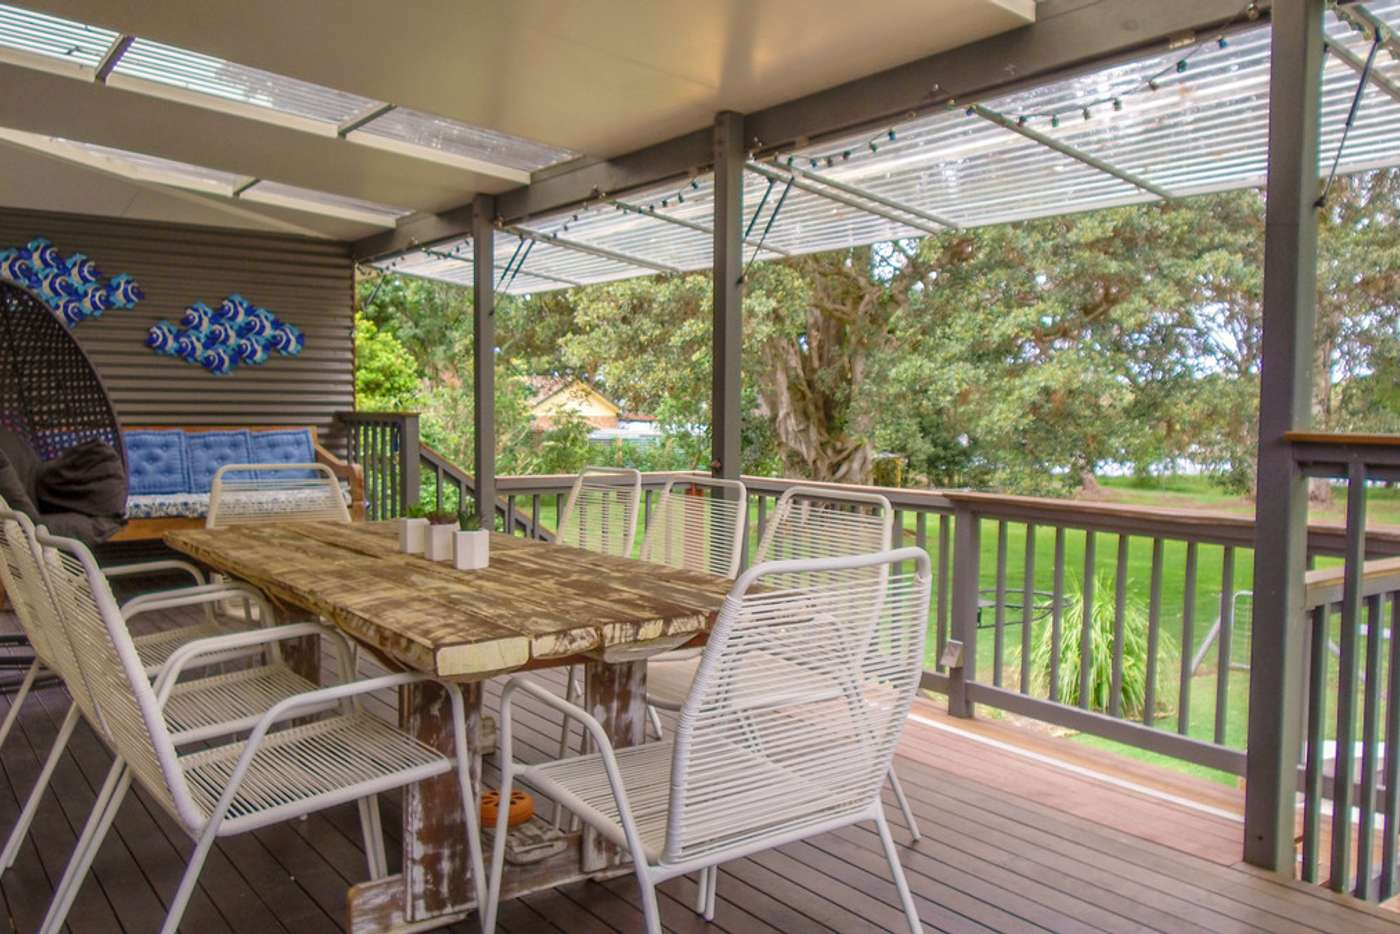 Main view of Homely house listing, 544 Ocean Drive, North Haven NSW 2443